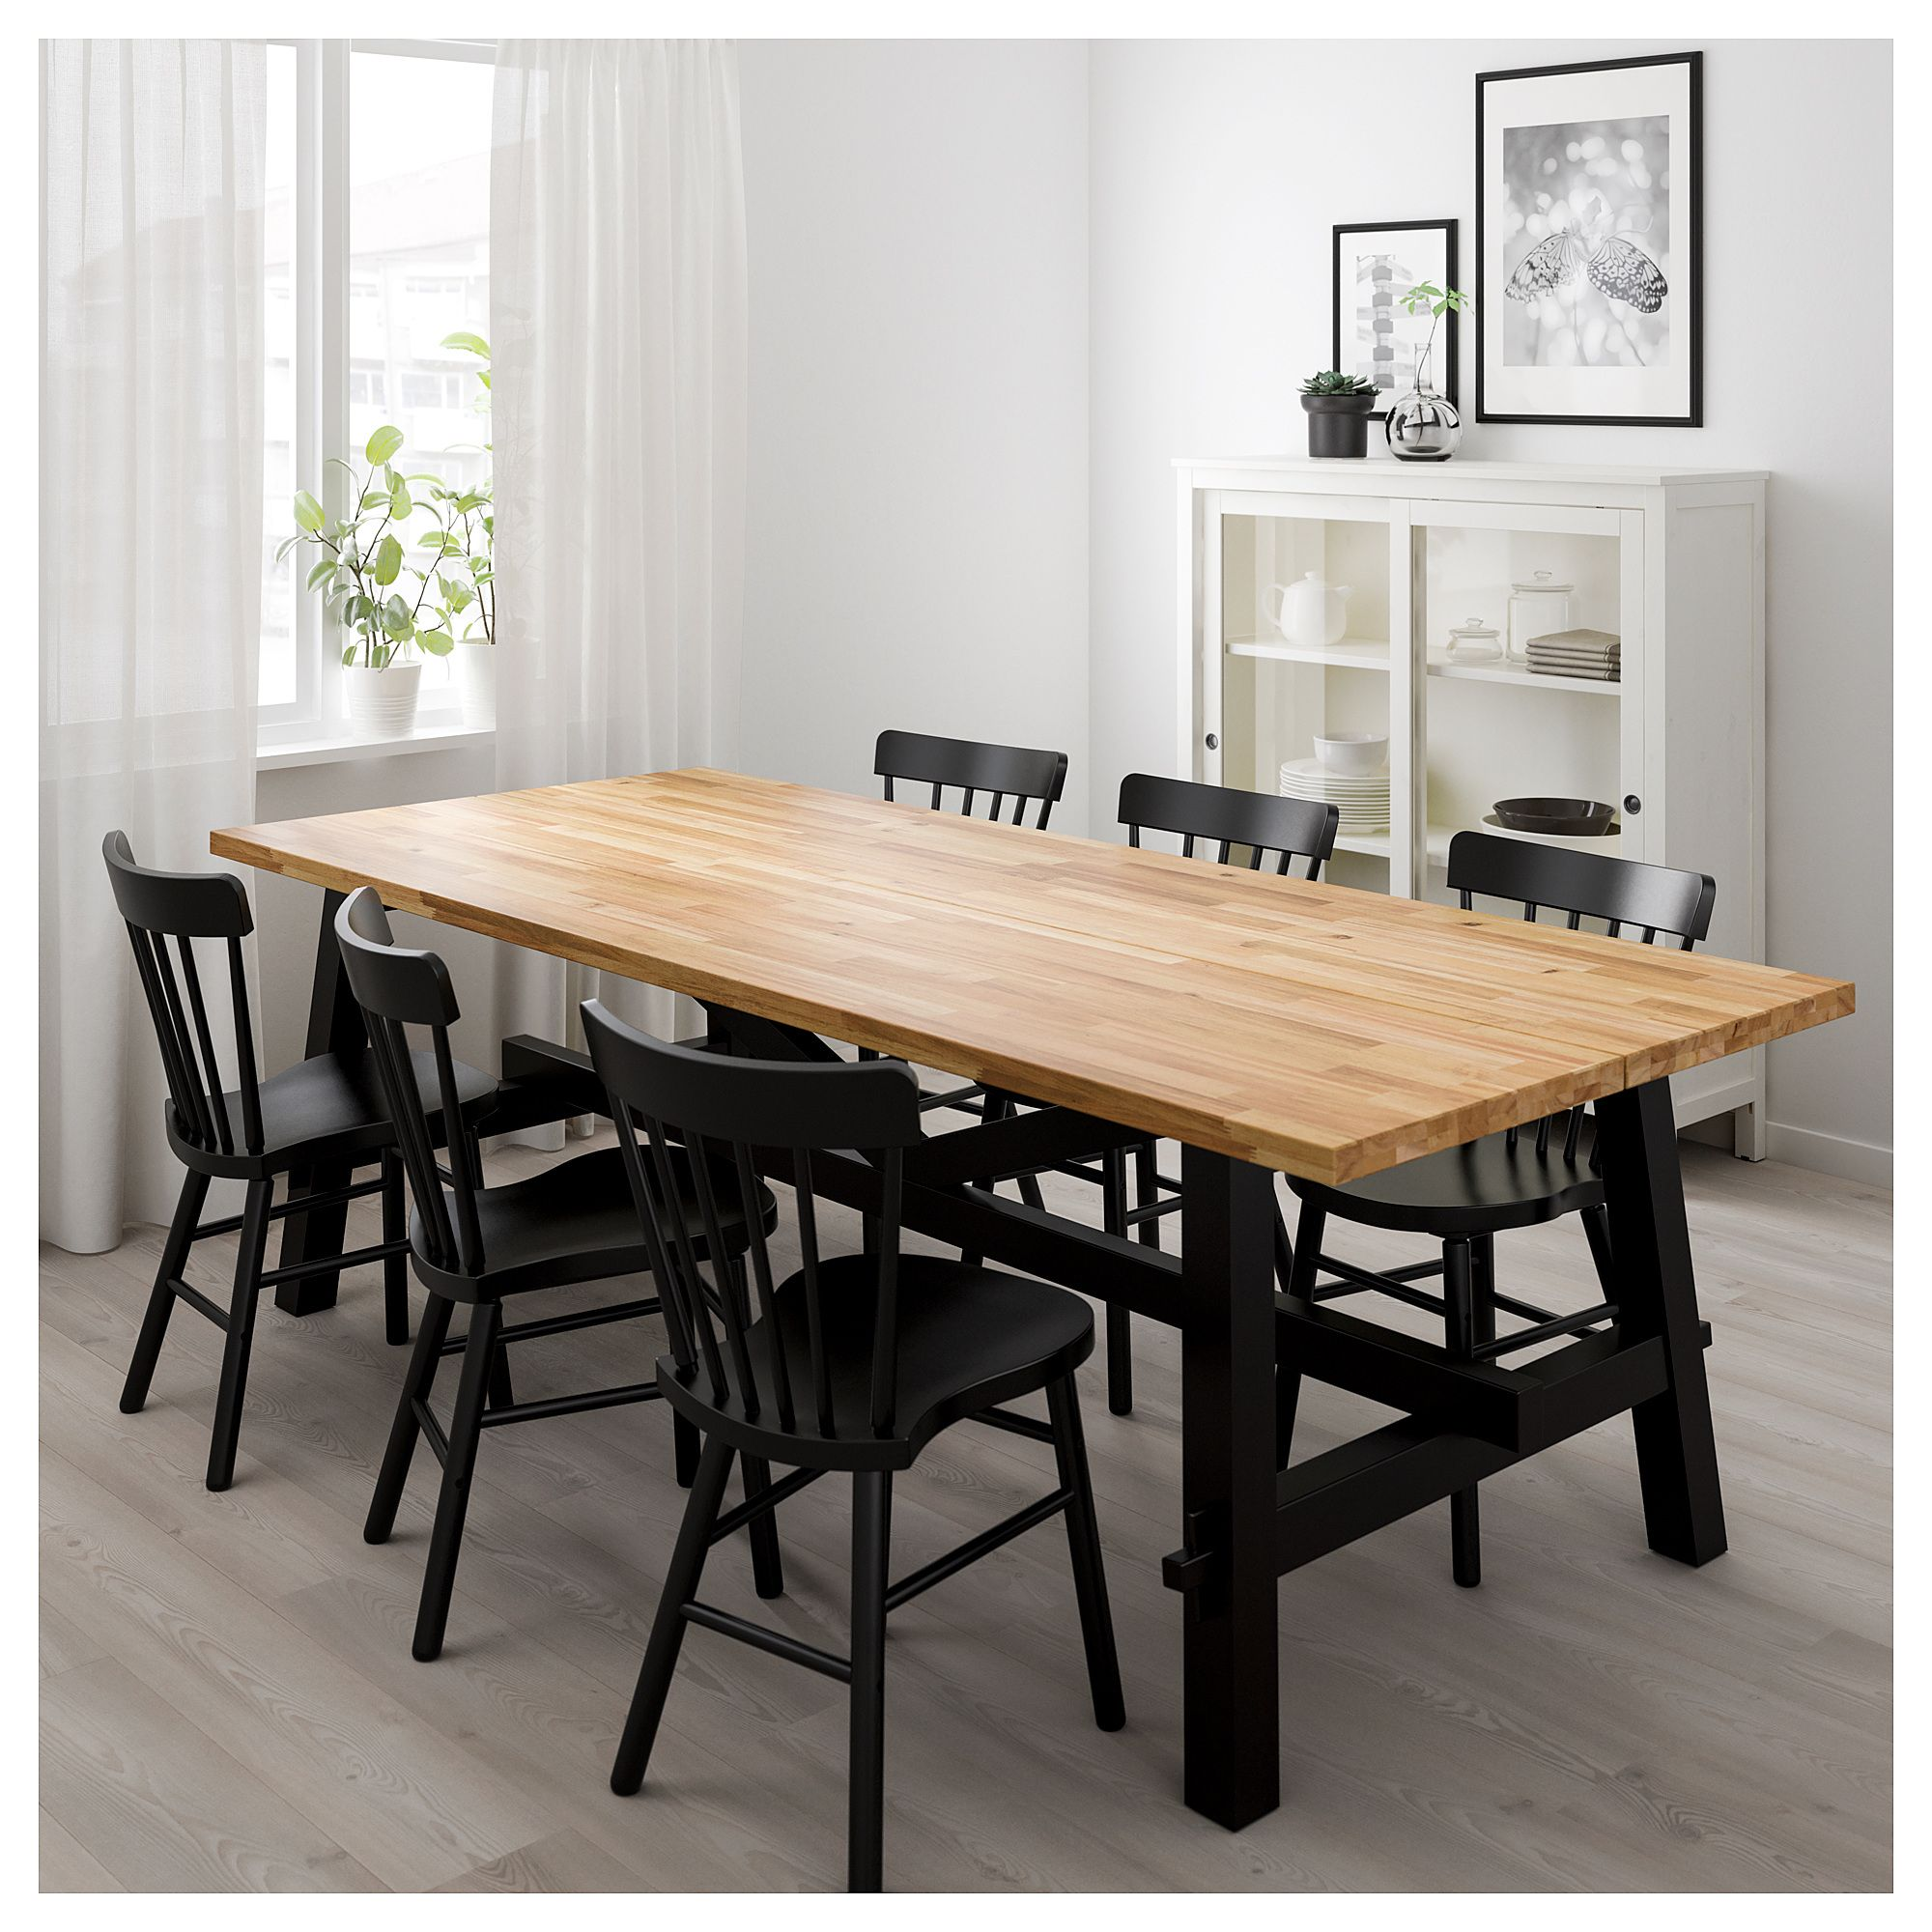 Dining Room Tables Ikea: Furniture And Home Furnishings In 2019